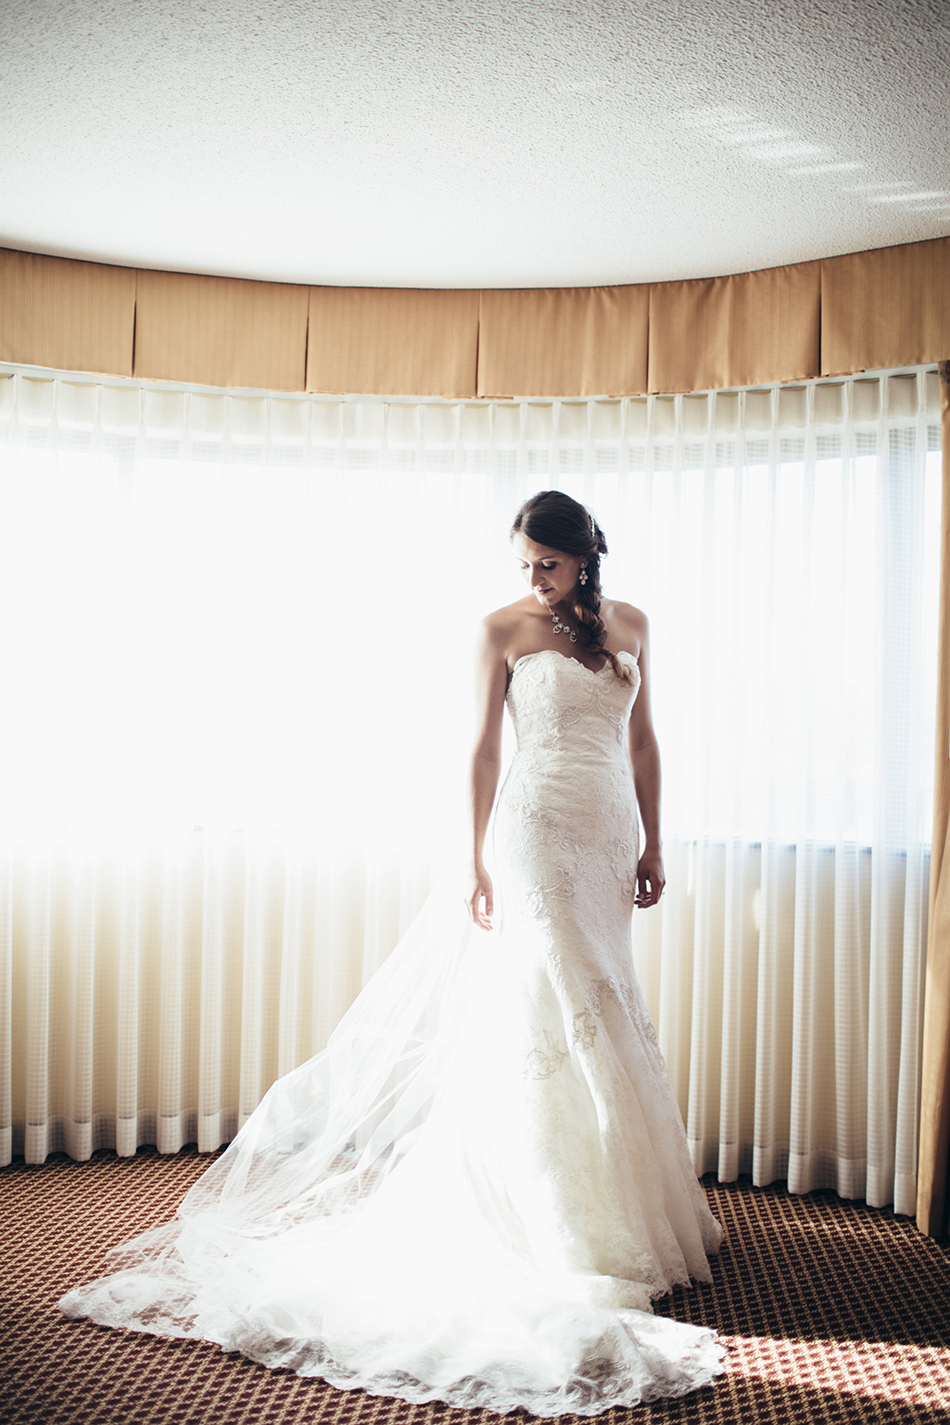 watters_minneapolis_realwedding04.jpg